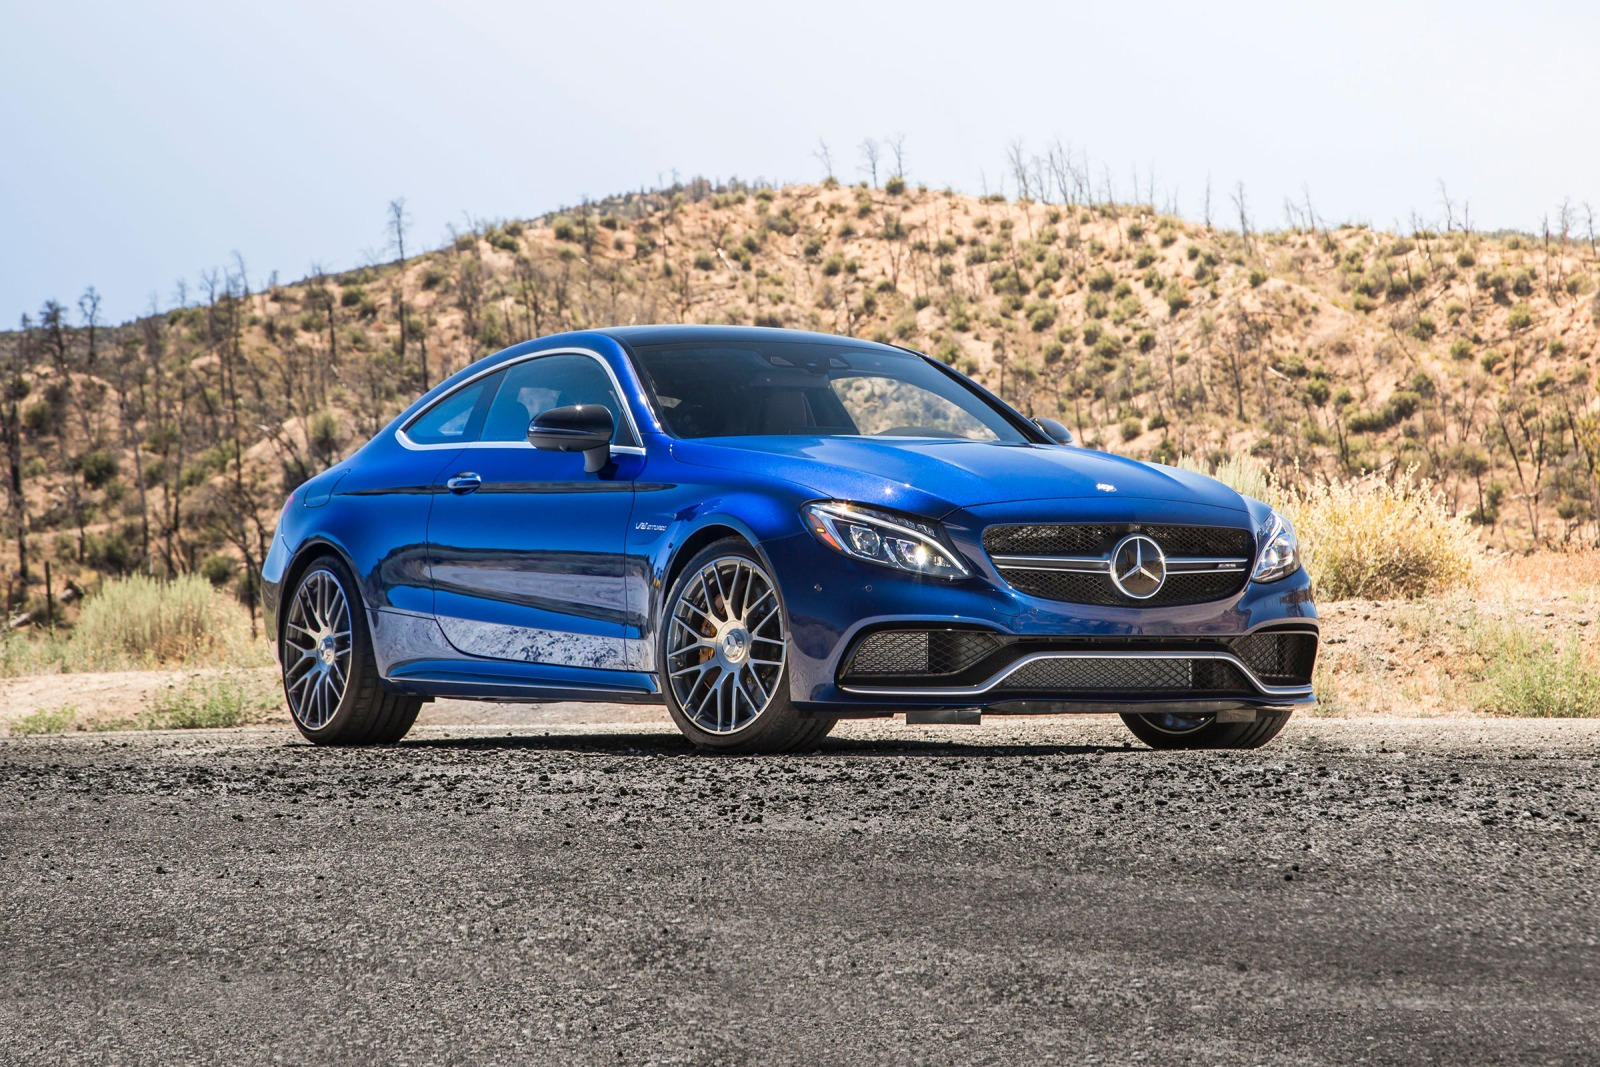 2018 mercedes amg c63 coupe review trims specs and price carbuzz. Black Bedroom Furniture Sets. Home Design Ideas